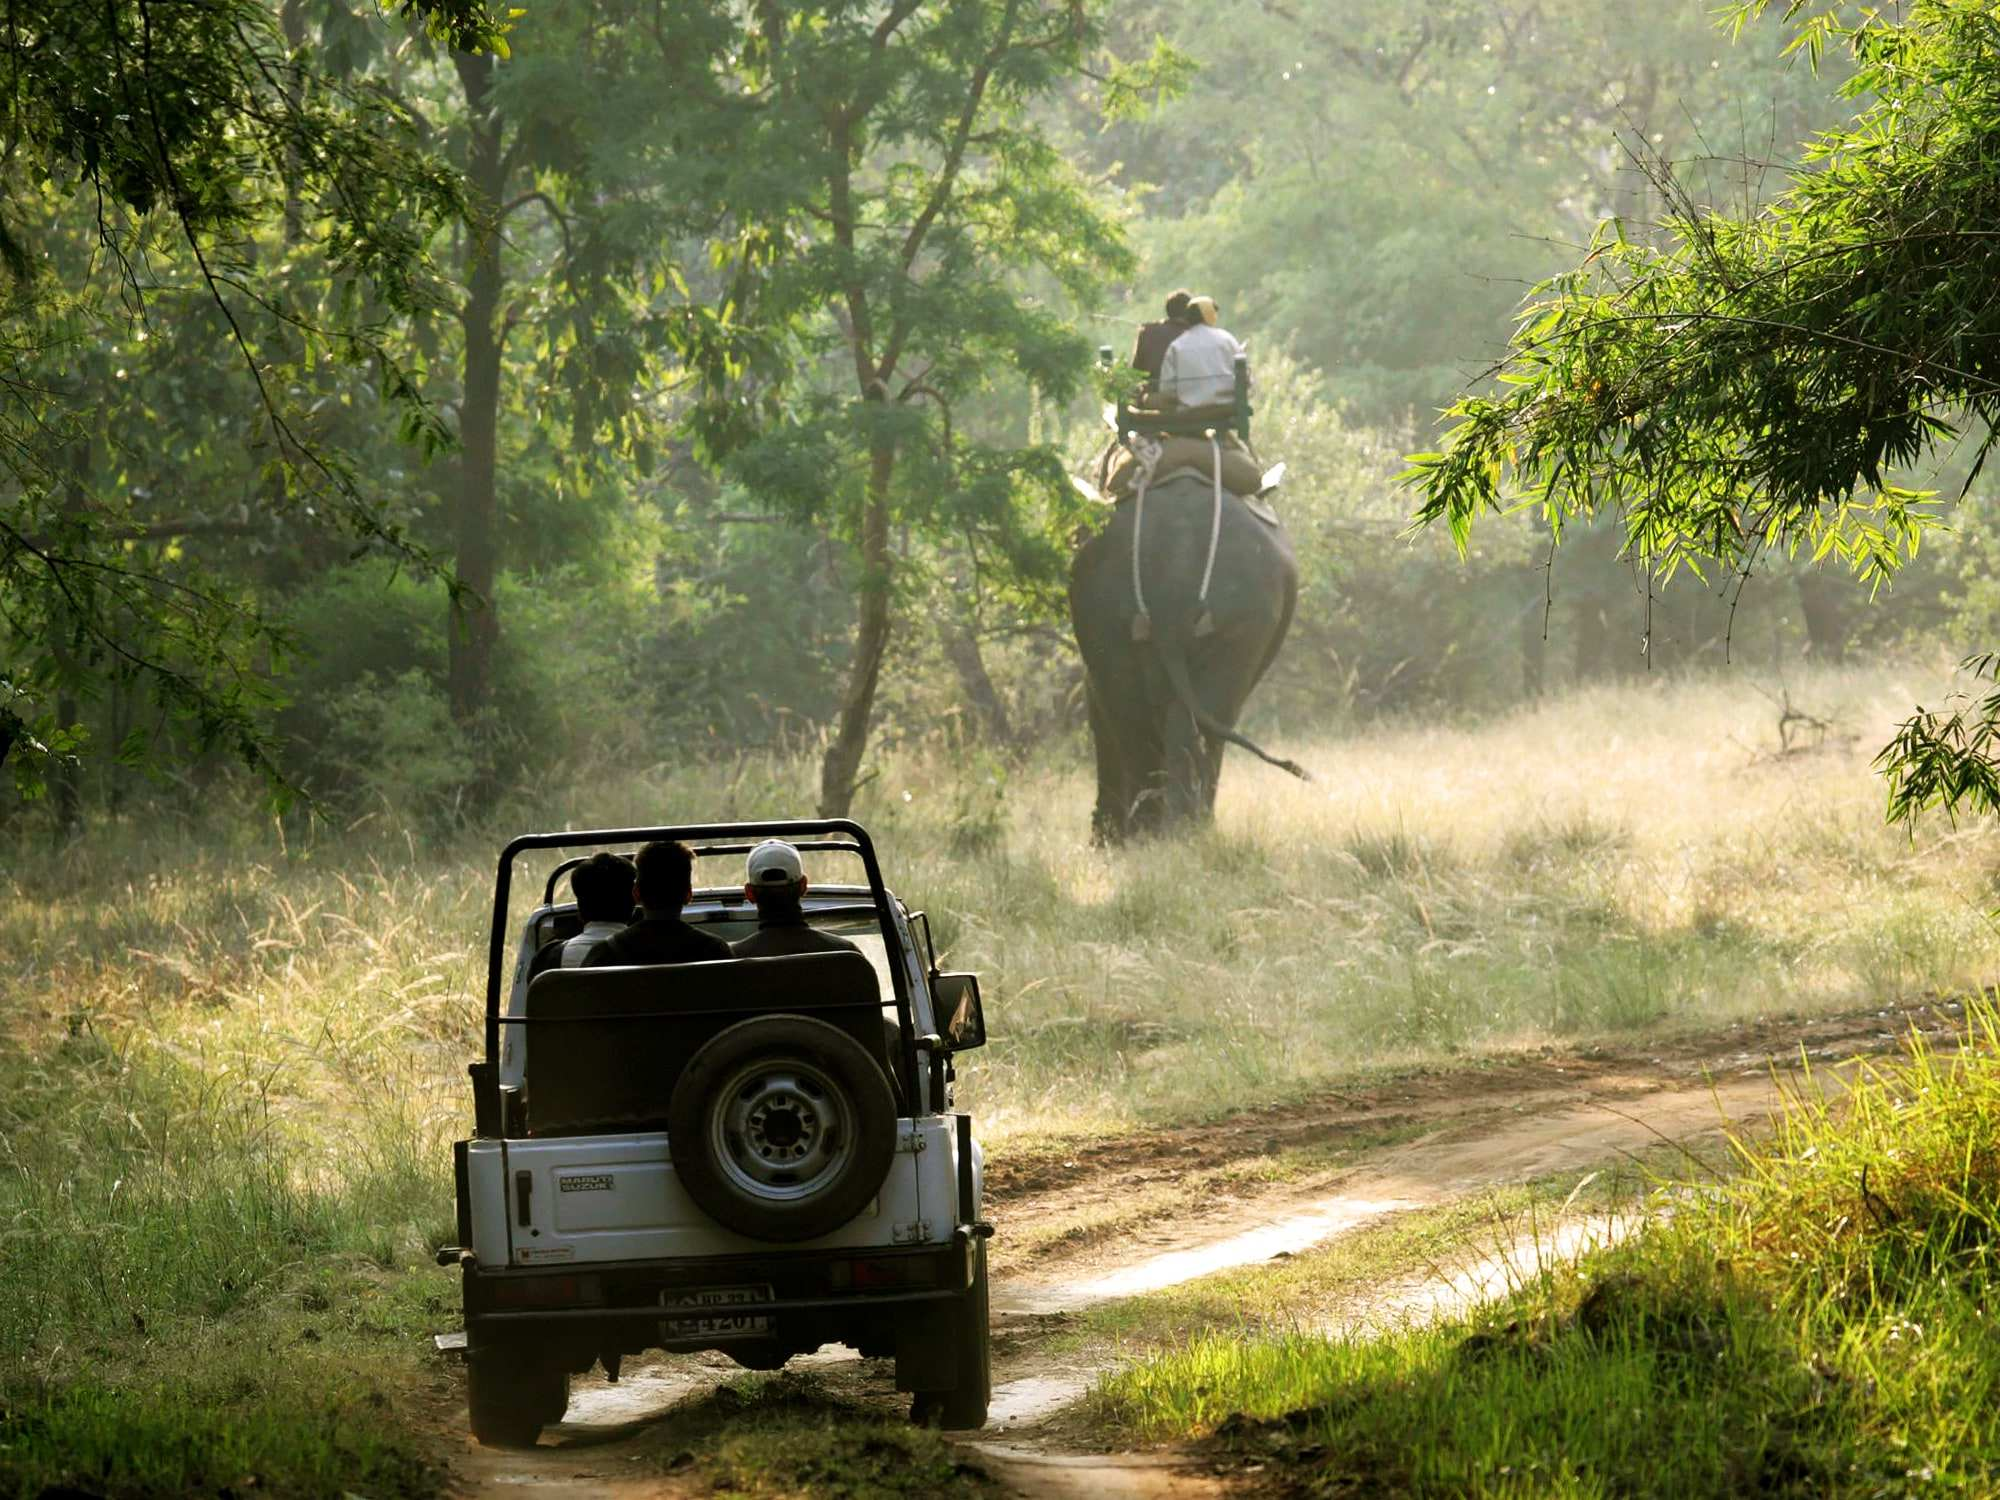 10 Best Offbeat Jungle Safaris of India